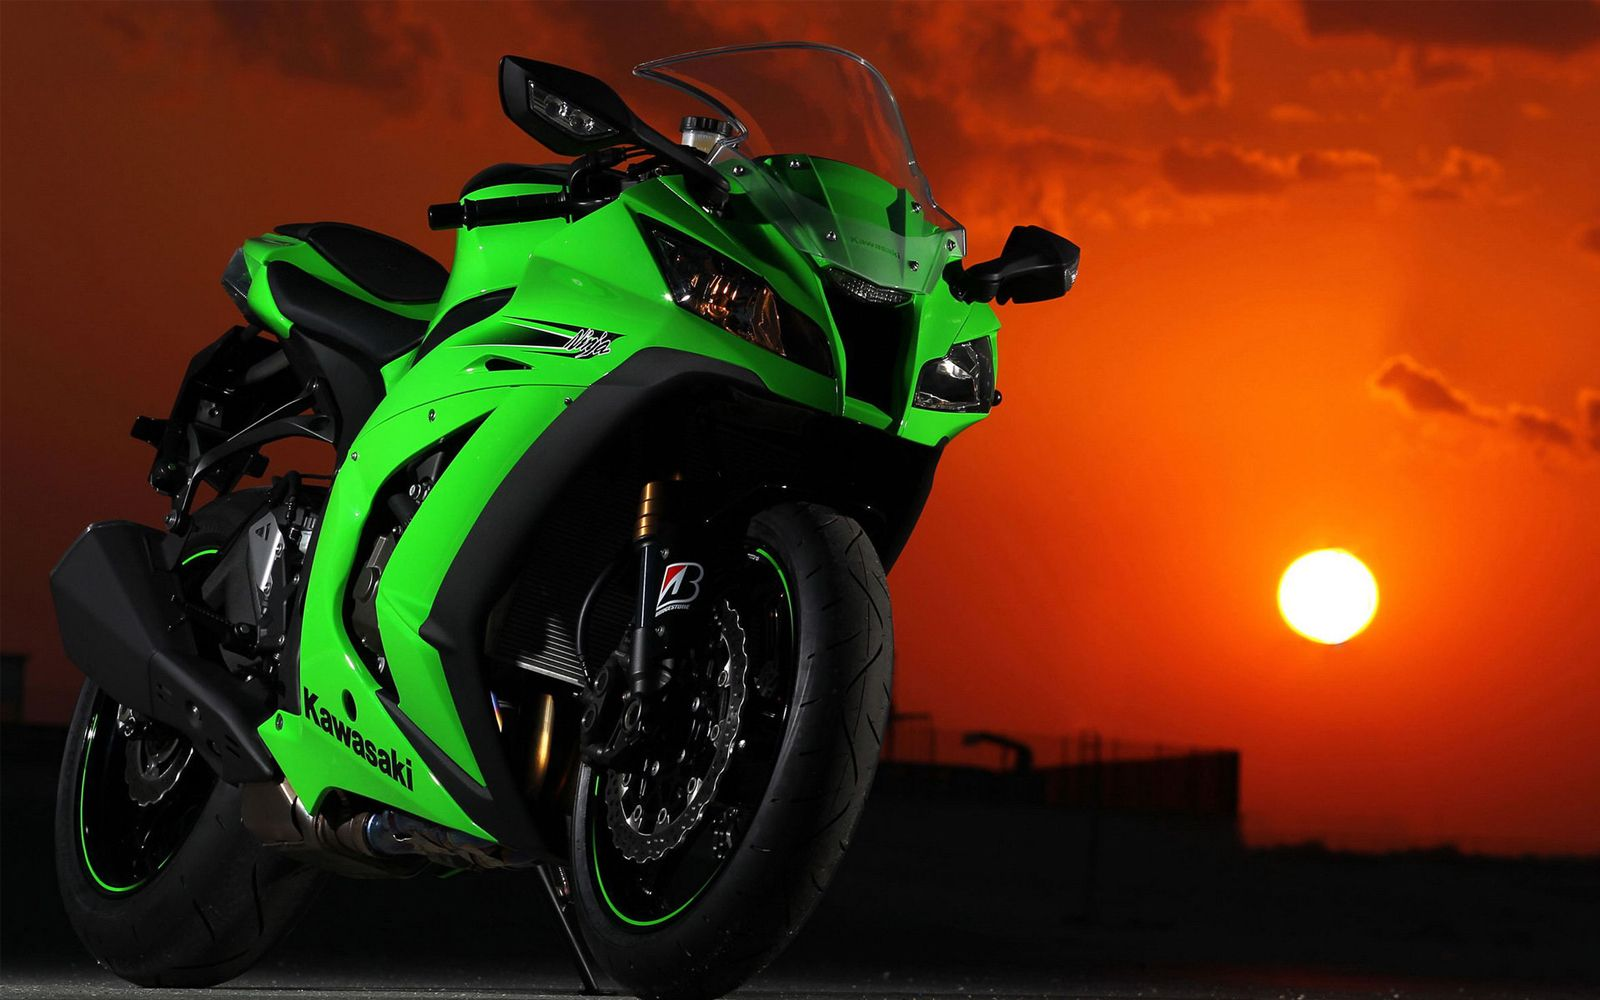 Kawasaki Ninja Zx10r HD Wallpapers 2 | Bikes Wallpapers | Pinterest